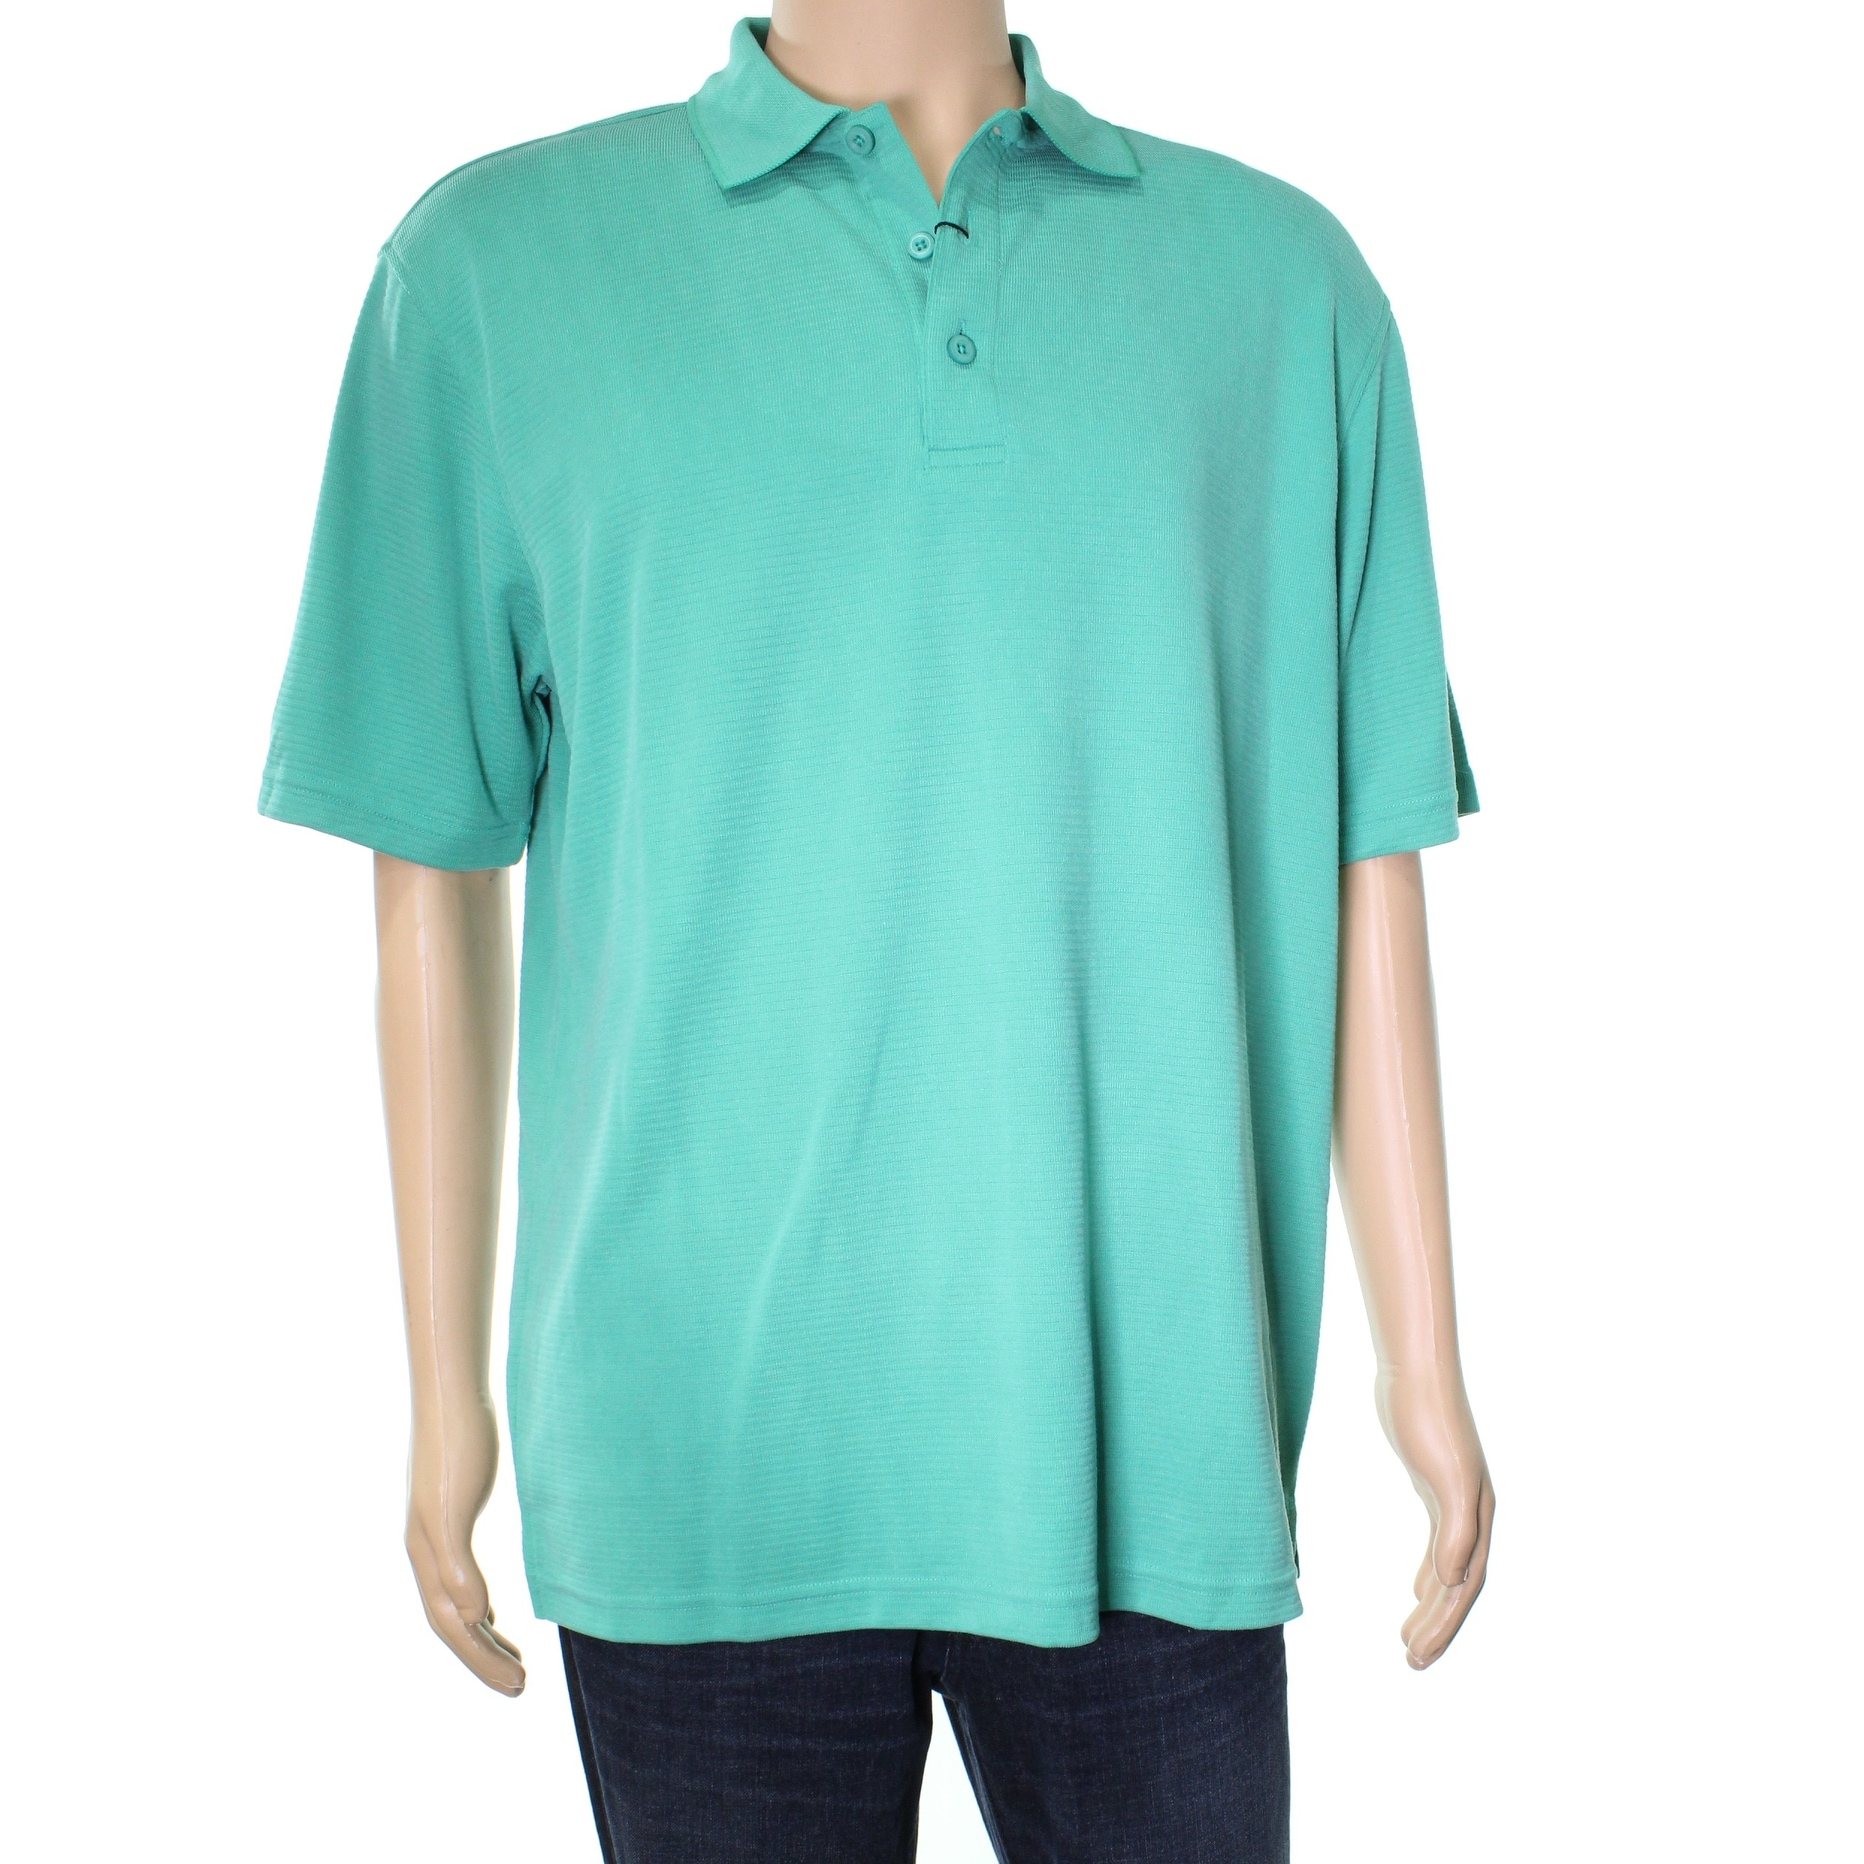 Bugatchi New Solid Green Emerald Mens Size Large L Polo Rugby Shirt